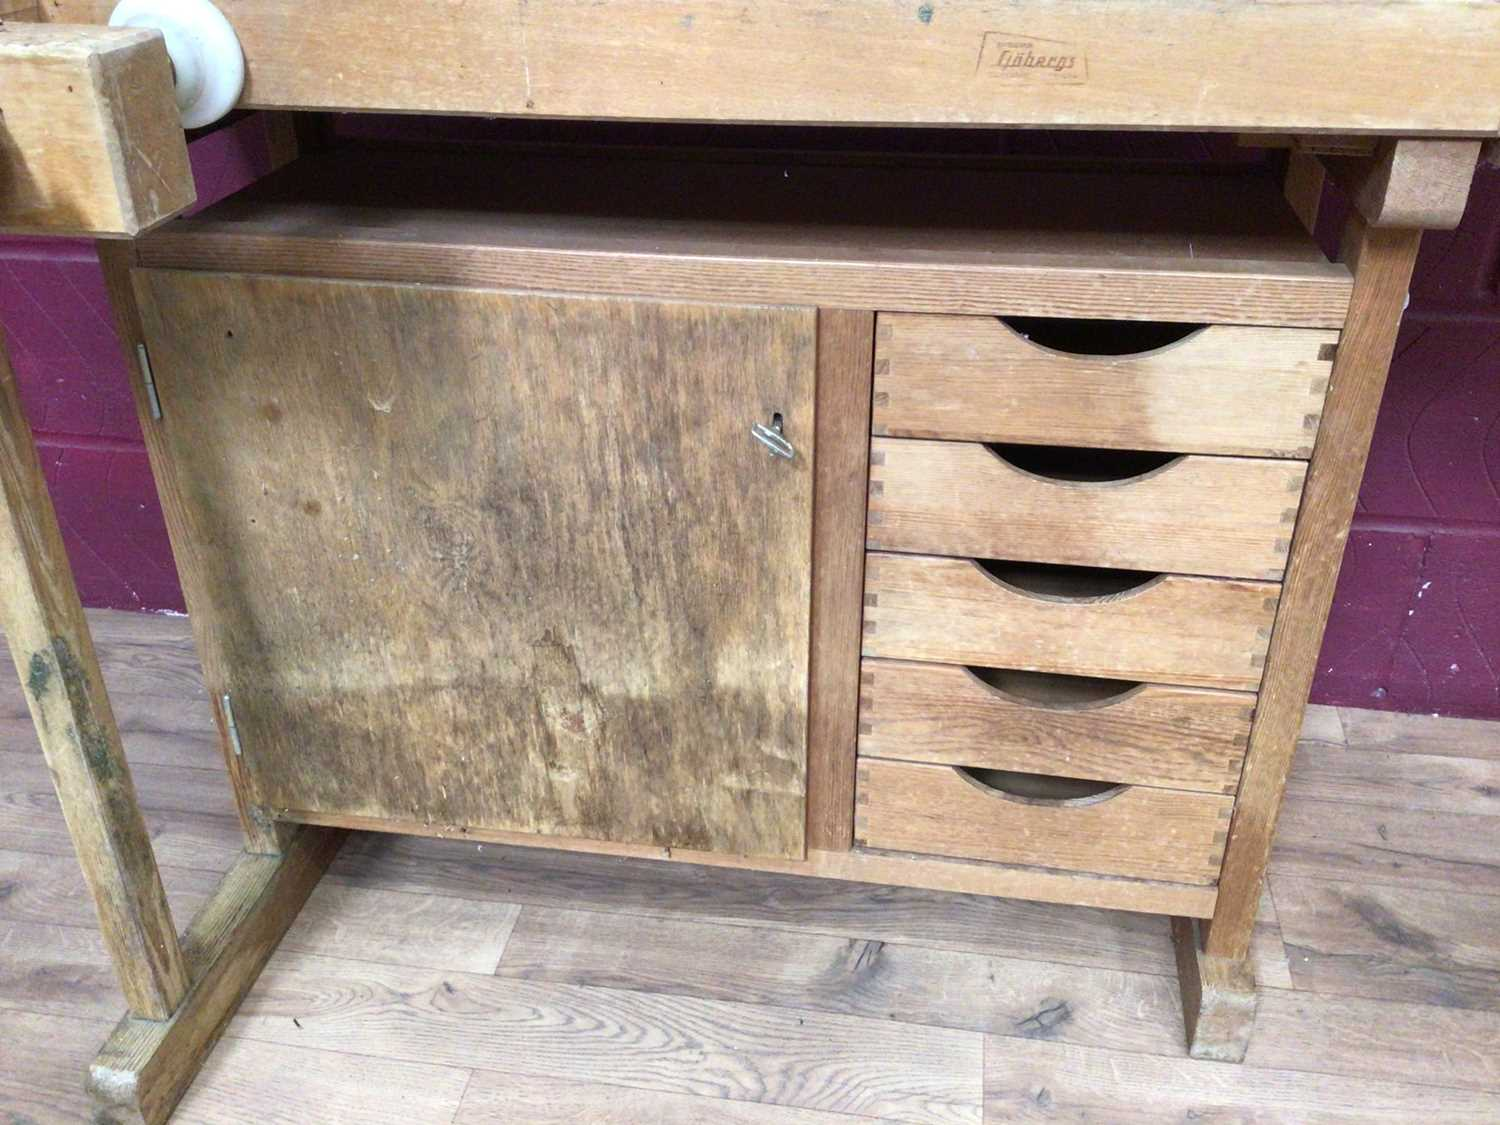 Scandanavian work bench by Gobergs of Sweden - Image 4 of 8